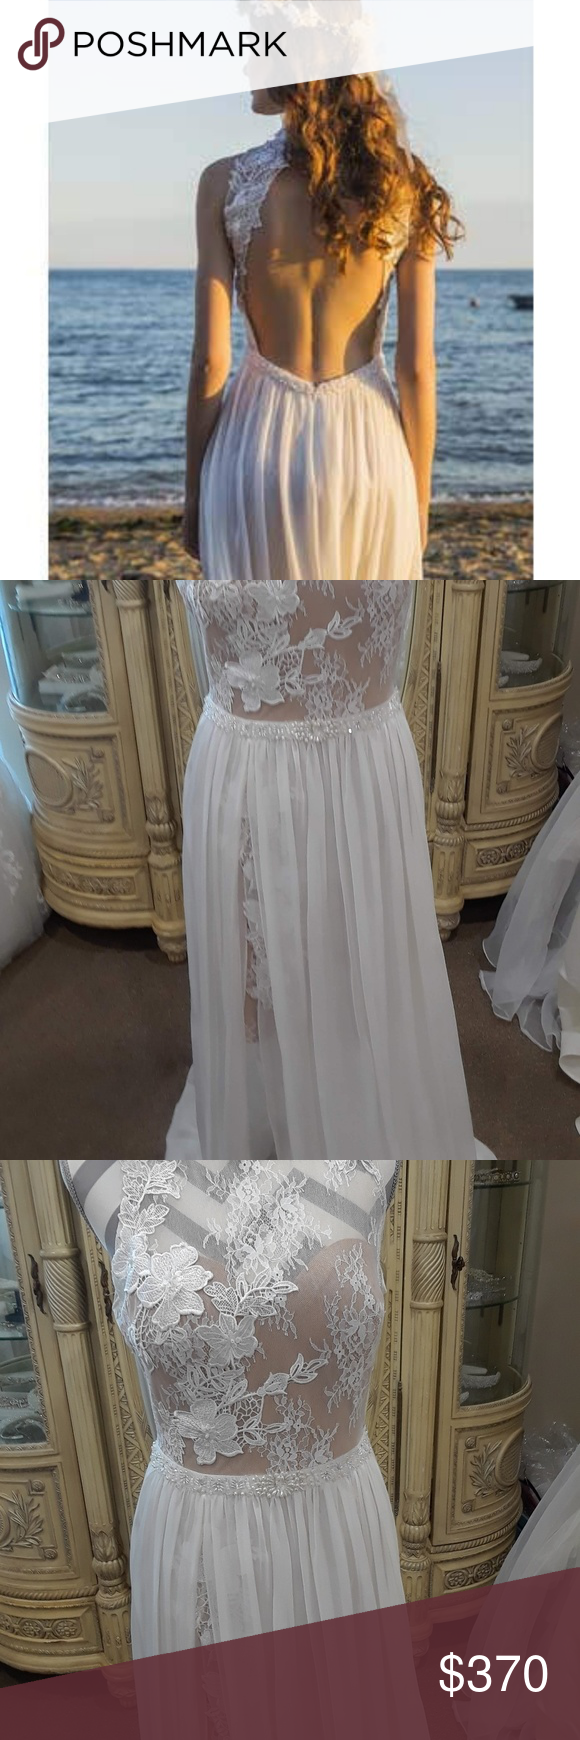 Chic Nostalgia Boho Lace Halter Wedding Gown Lace Halter With Flattering Open Back And Slightly Gathered C Wedding Gown Halter Wedding Gowns Lace Wedding Gowns [ 1740 x 580 Pixel ]